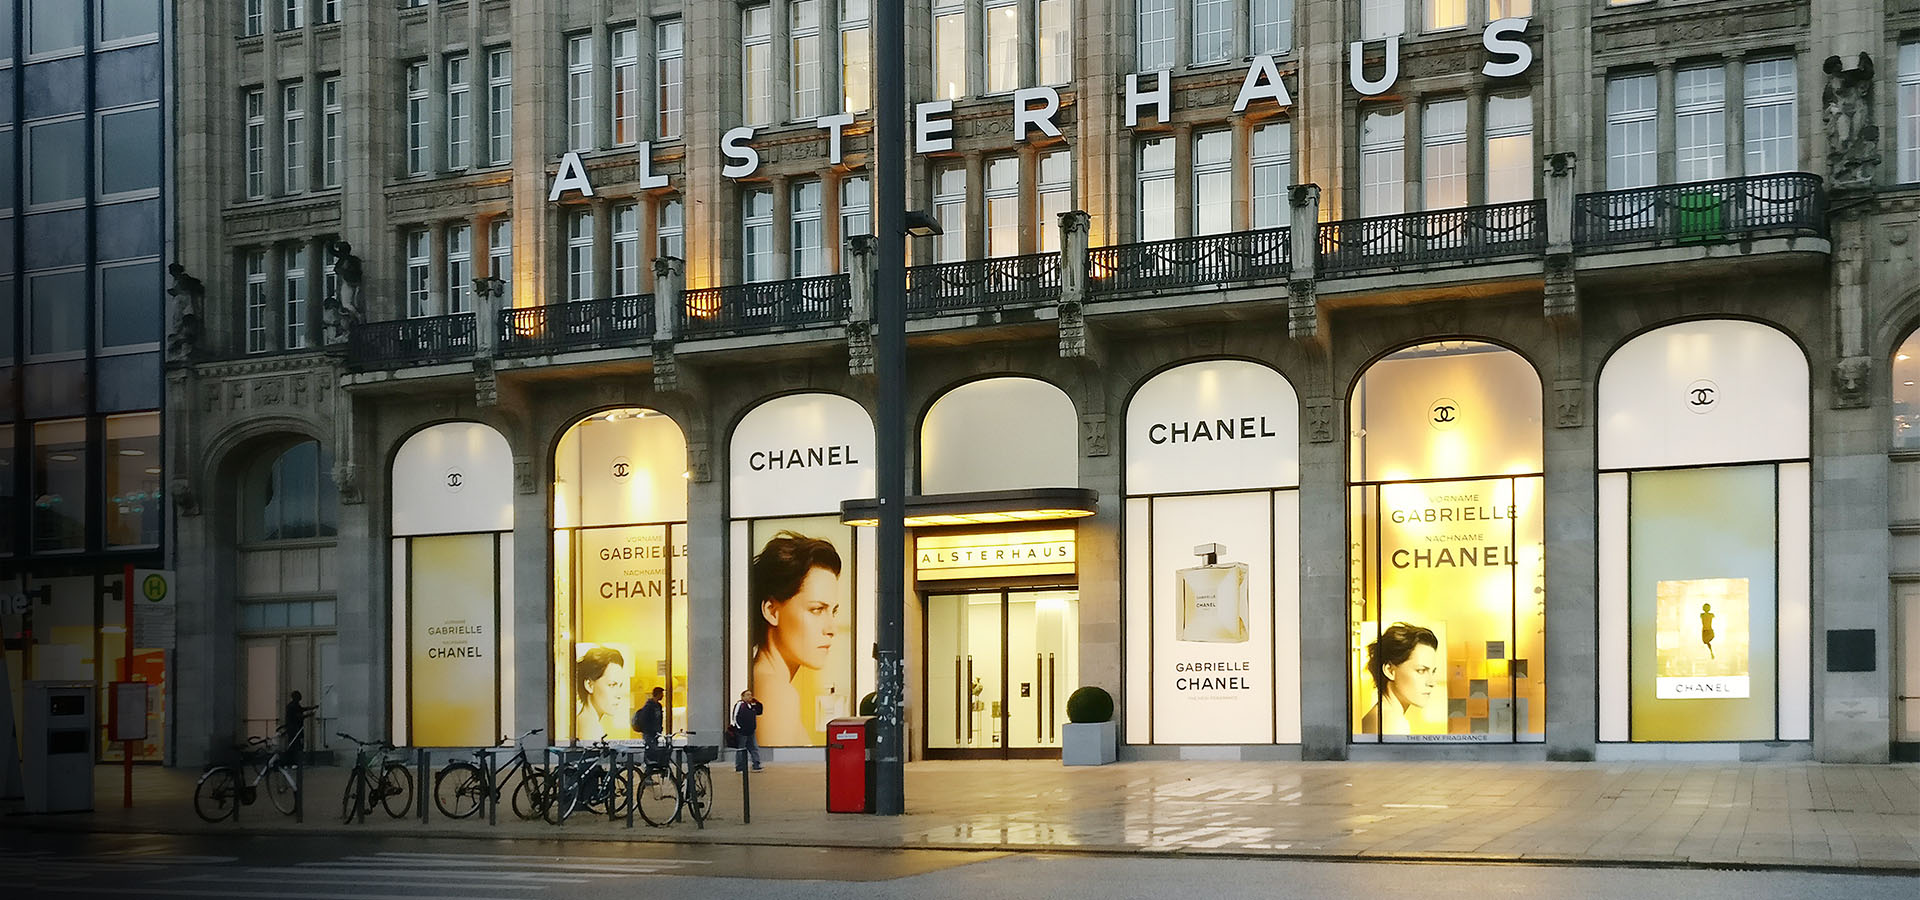 Alsterhaus Chanel Schaufenster